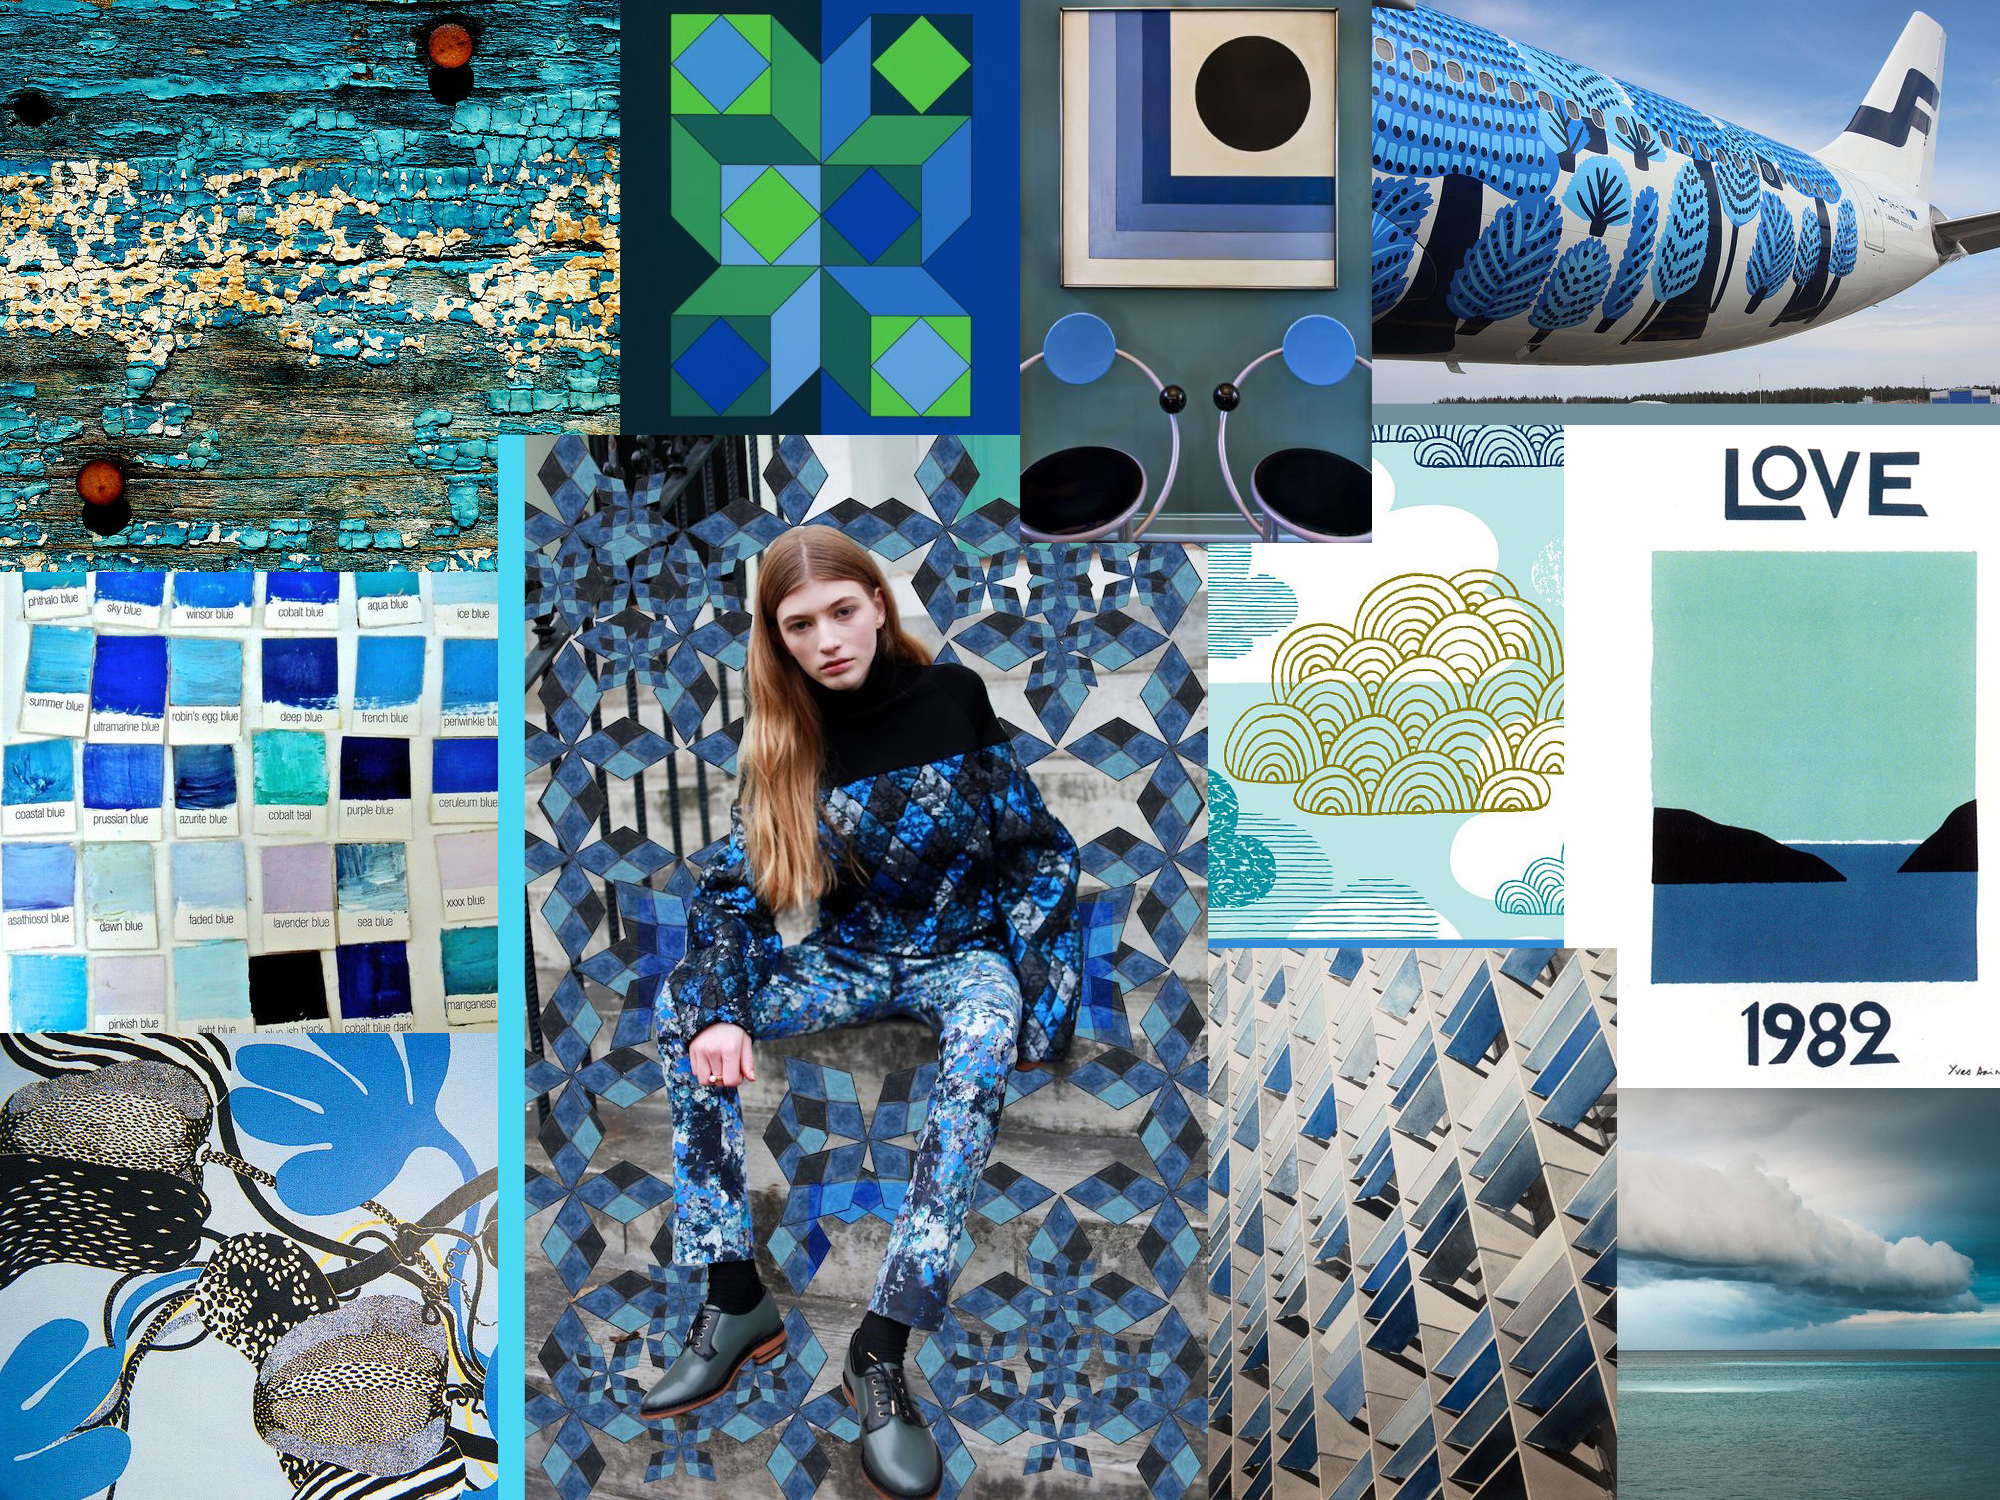 A blue mood board by Liz Nehdi